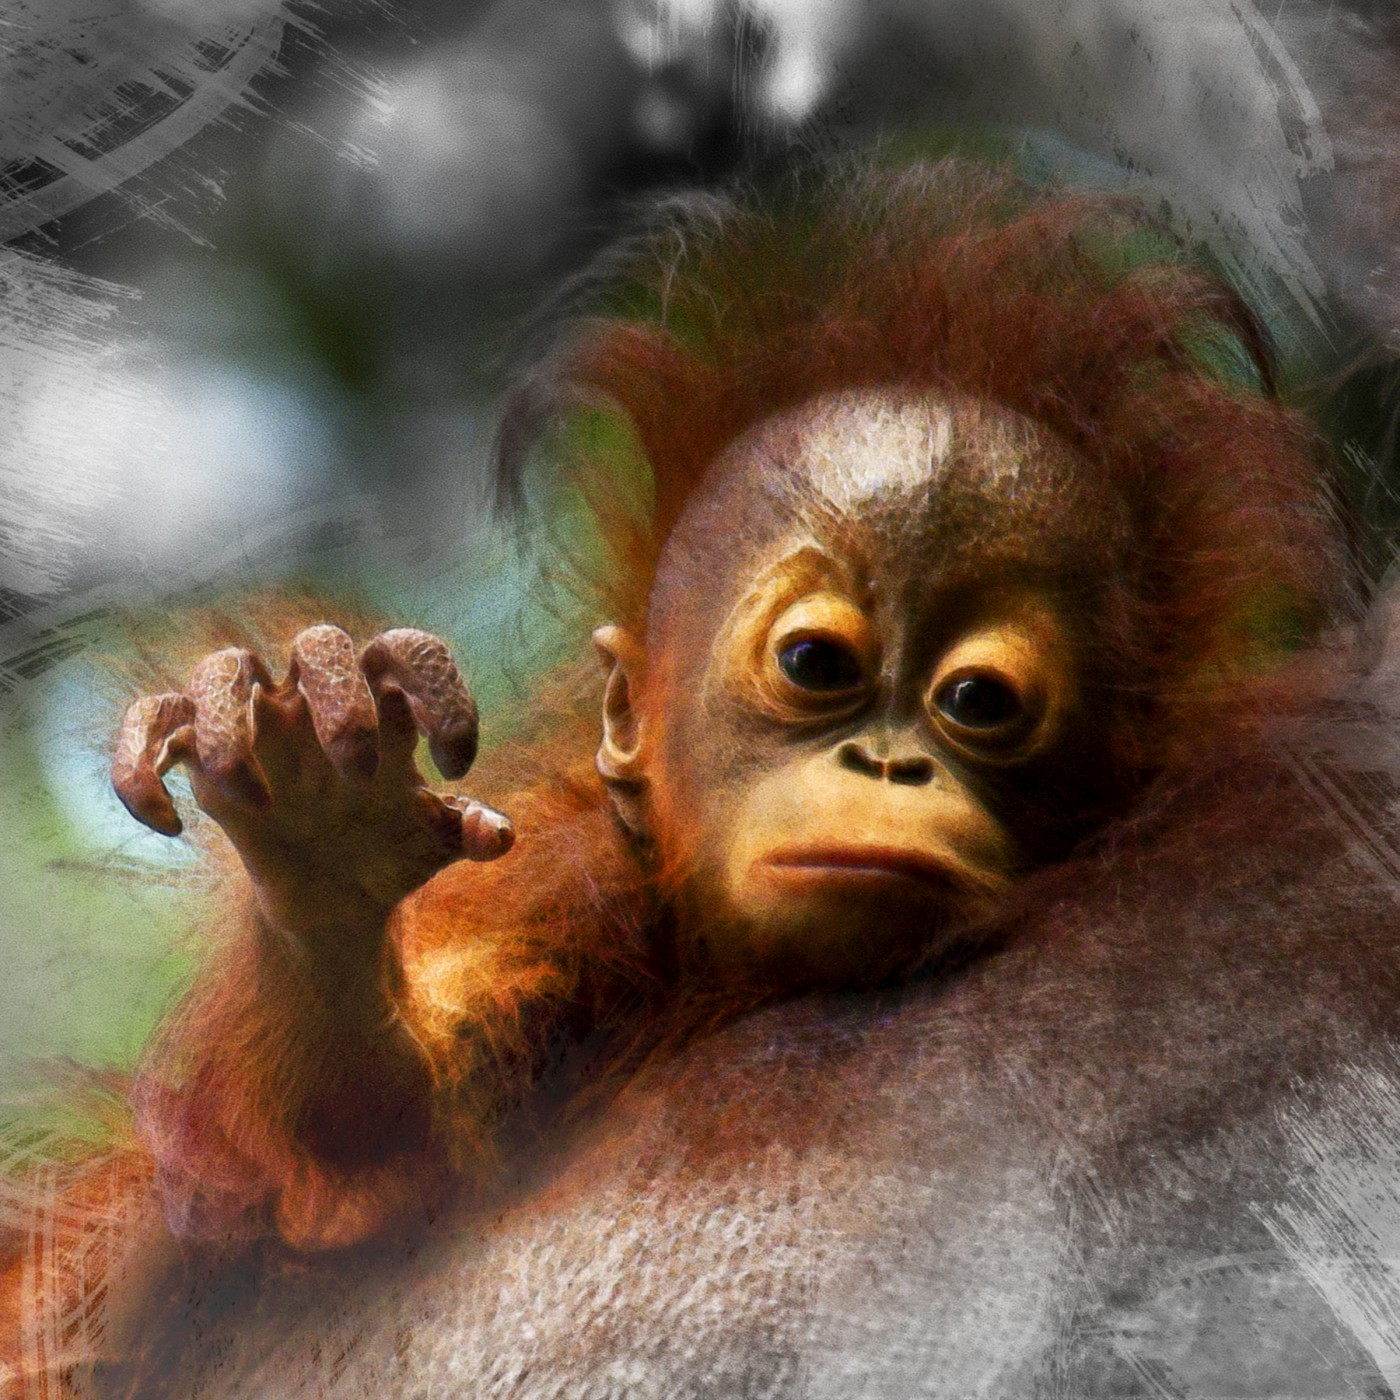 Misha Masek, </span><span><em>Critically endangered orangutan</em>, </span><span>2015